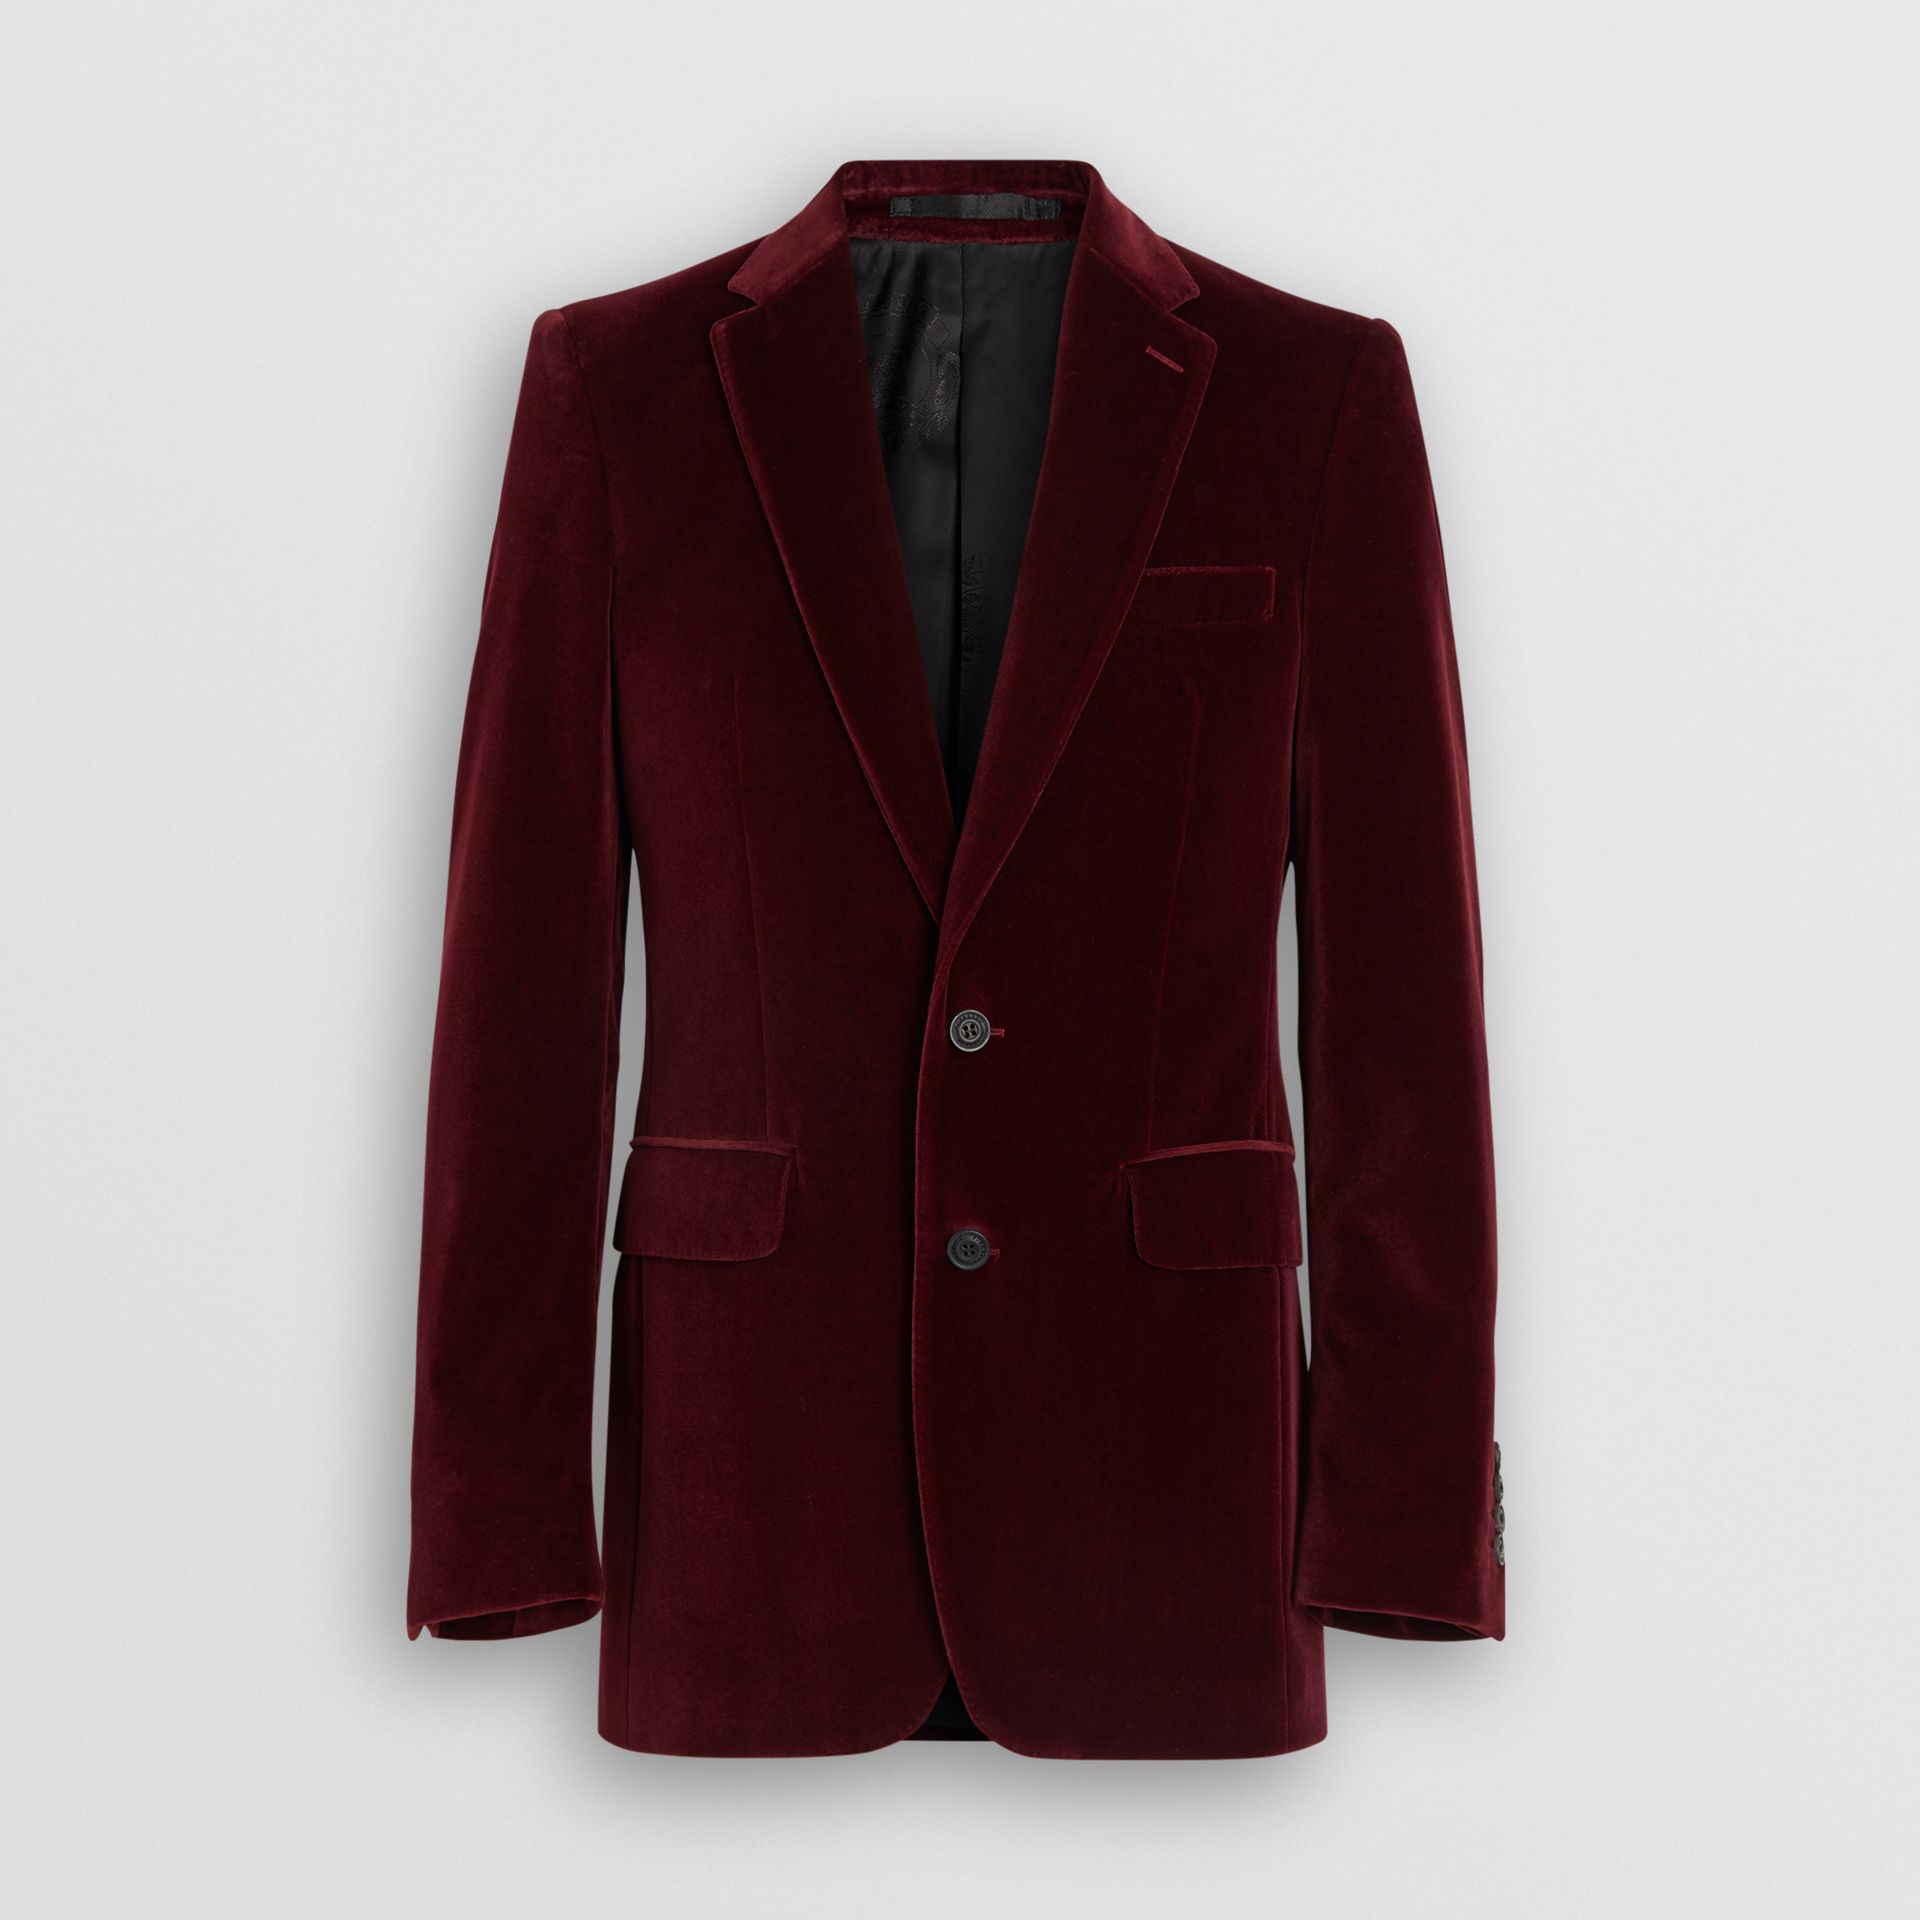 Classic Fit Velvet Tailored Jacket in Burgundy - Men | Burberry - gallery image 3